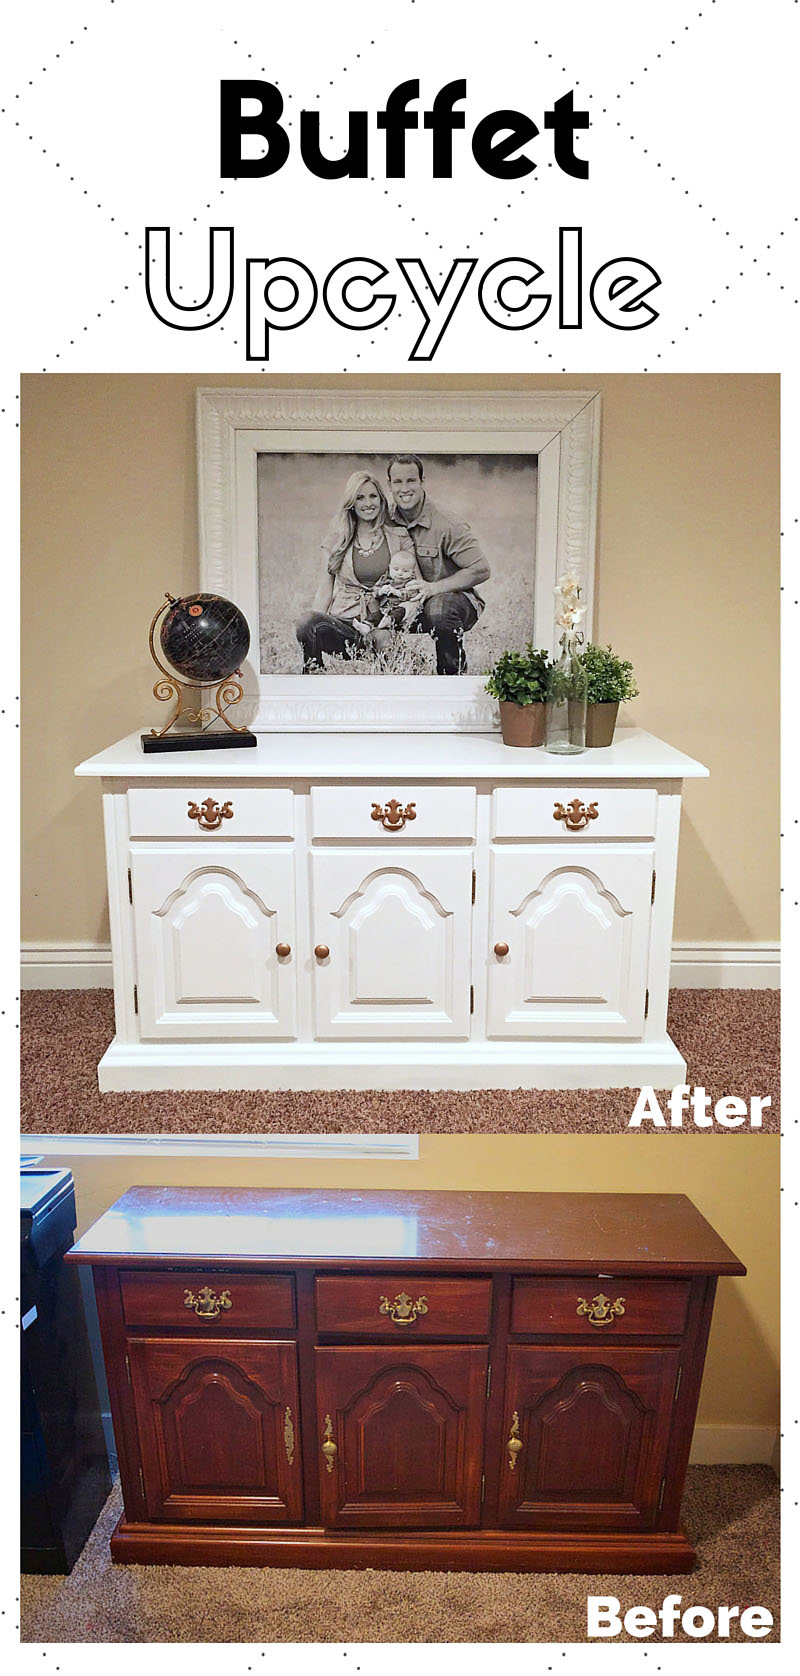 Love this buffet / dresser upcycle | Upcycled Buffet by popular Utah lifestyle blogger, Kara Metta: before and after image of a white upcycled buffet.